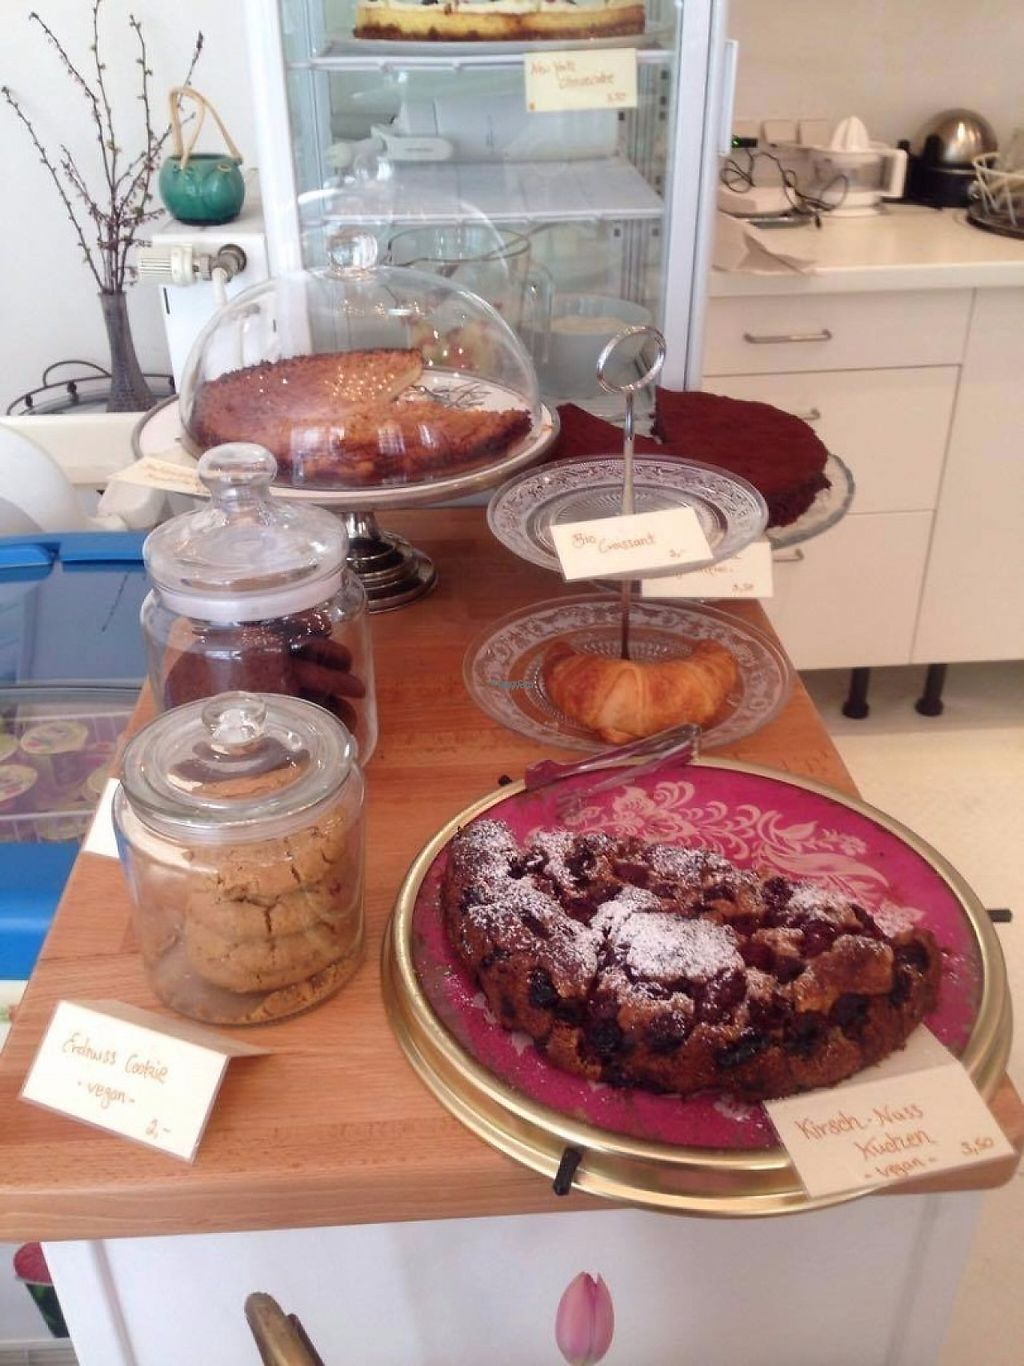 "Photo of Cafe Con Amore  by <a href=""/members/profile/Kyttiara"">Kyttiara</a> <br/>vegan cakes and cookies <br/> April 5, 2017  - <a href='/contact/abuse/image/83232/244930'>Report</a>"